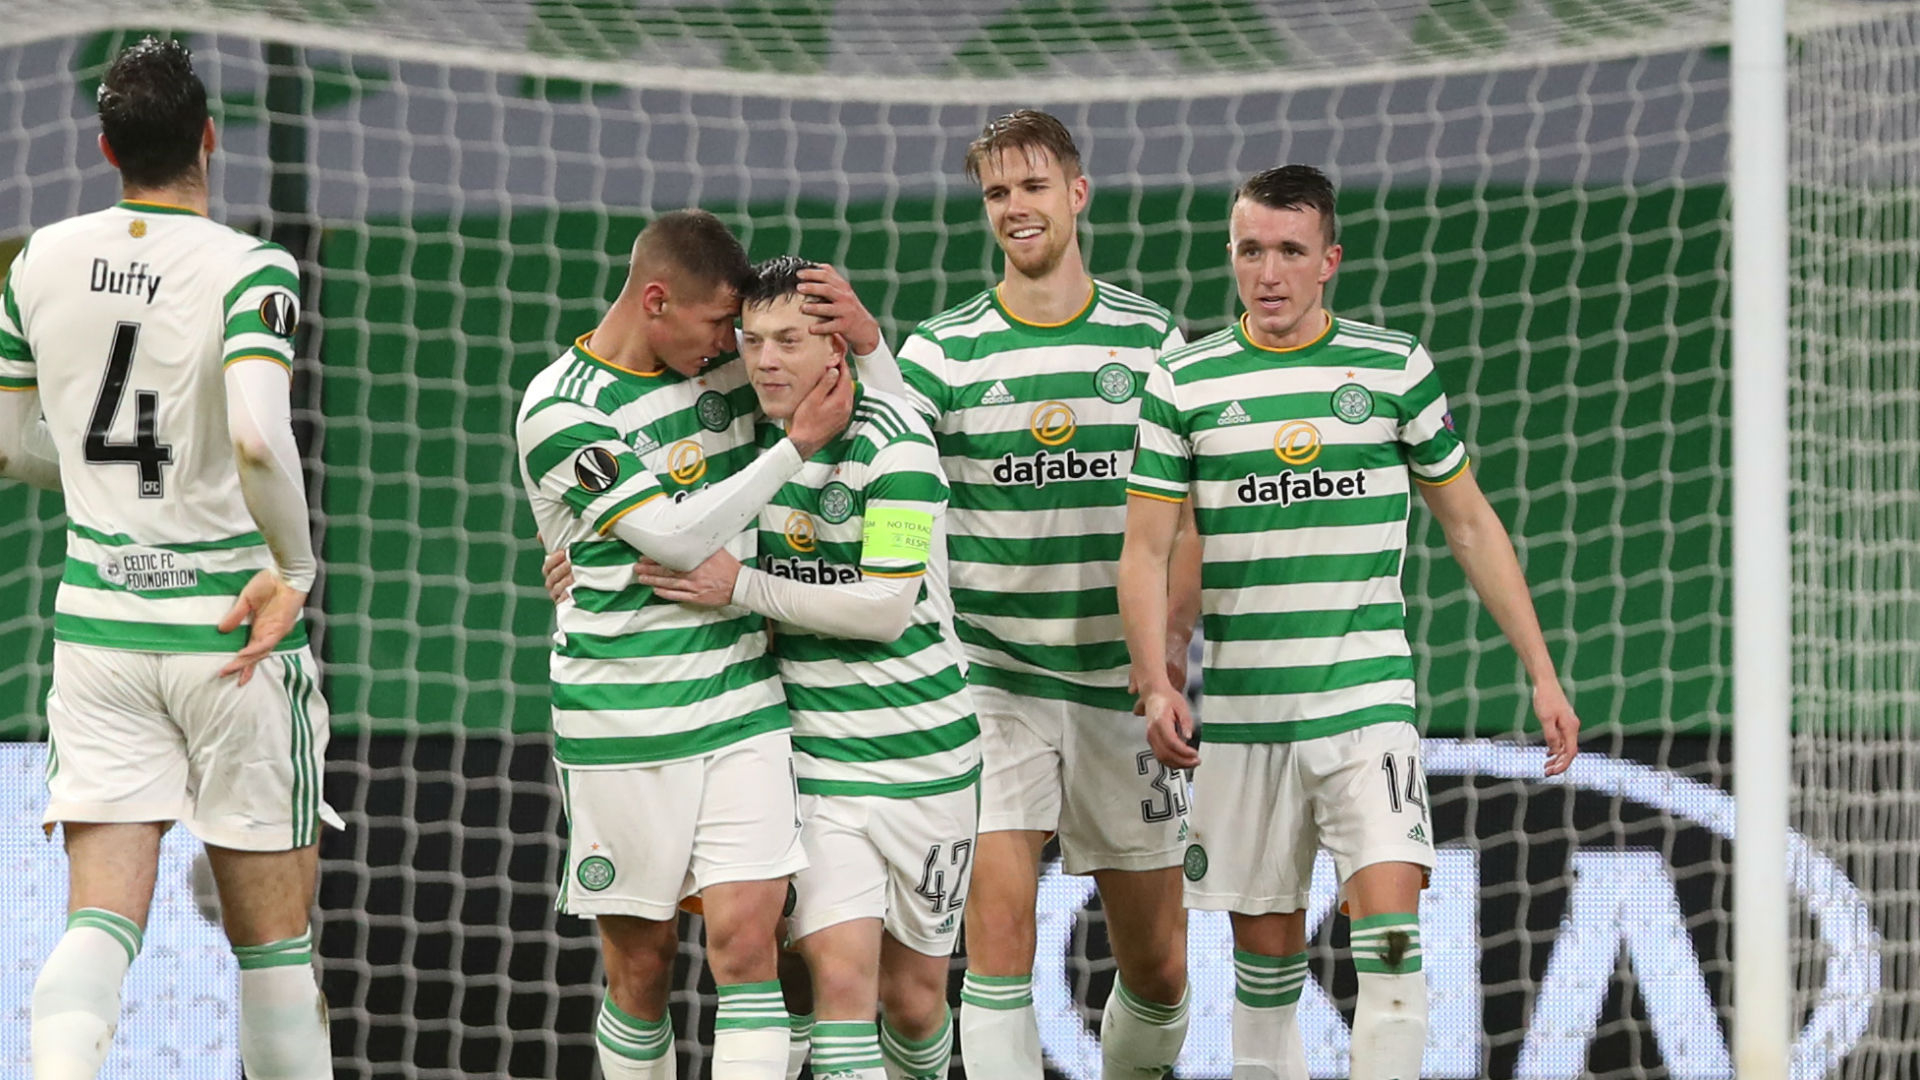 Celtic 3-2 Lille: Turnbull strike seals much-needed win for Lennon